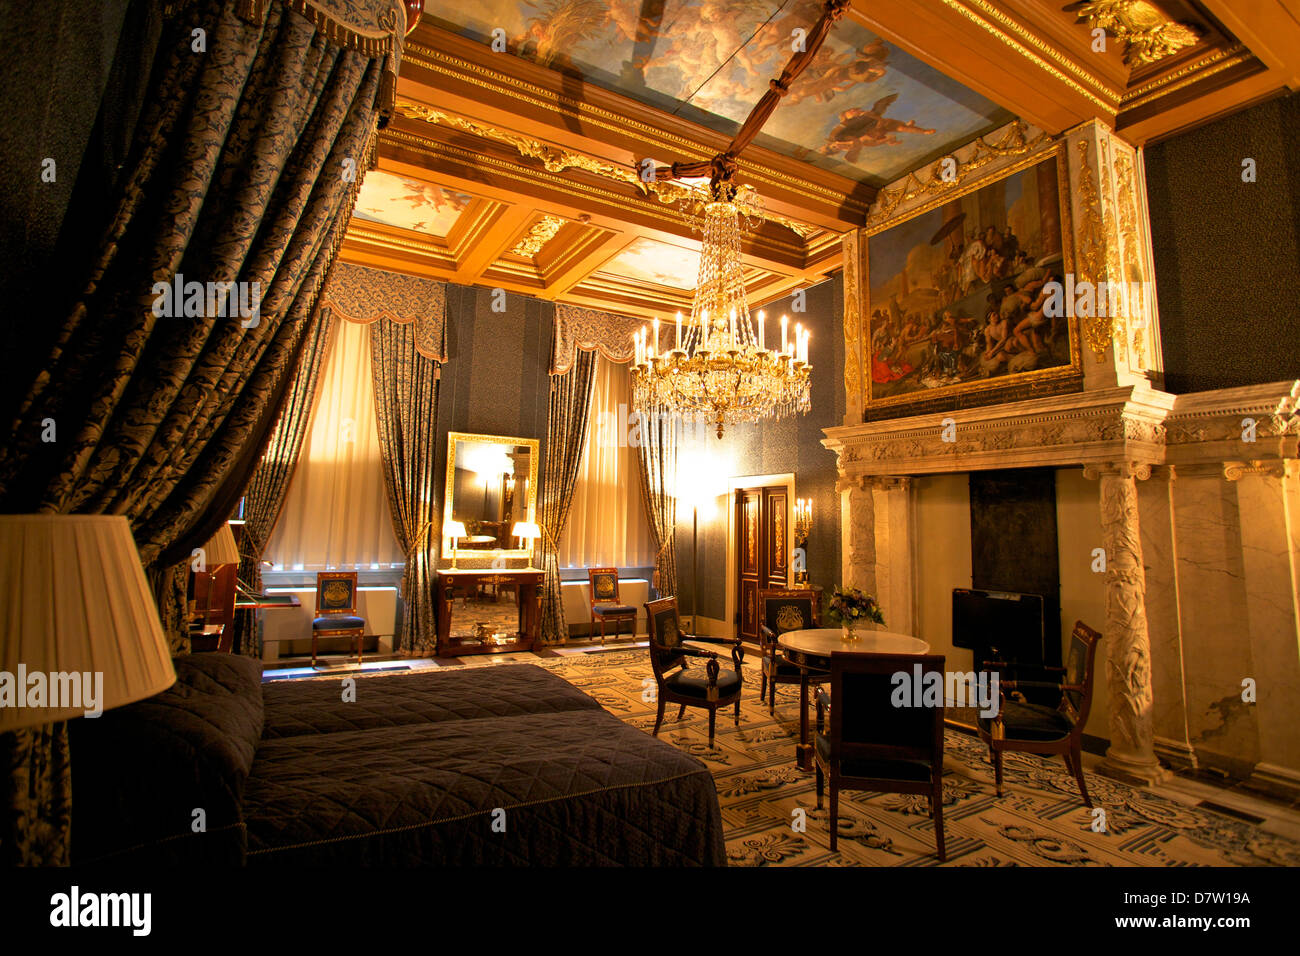 Bedroom in Royal Palace Amsterdam Netherlands Stock